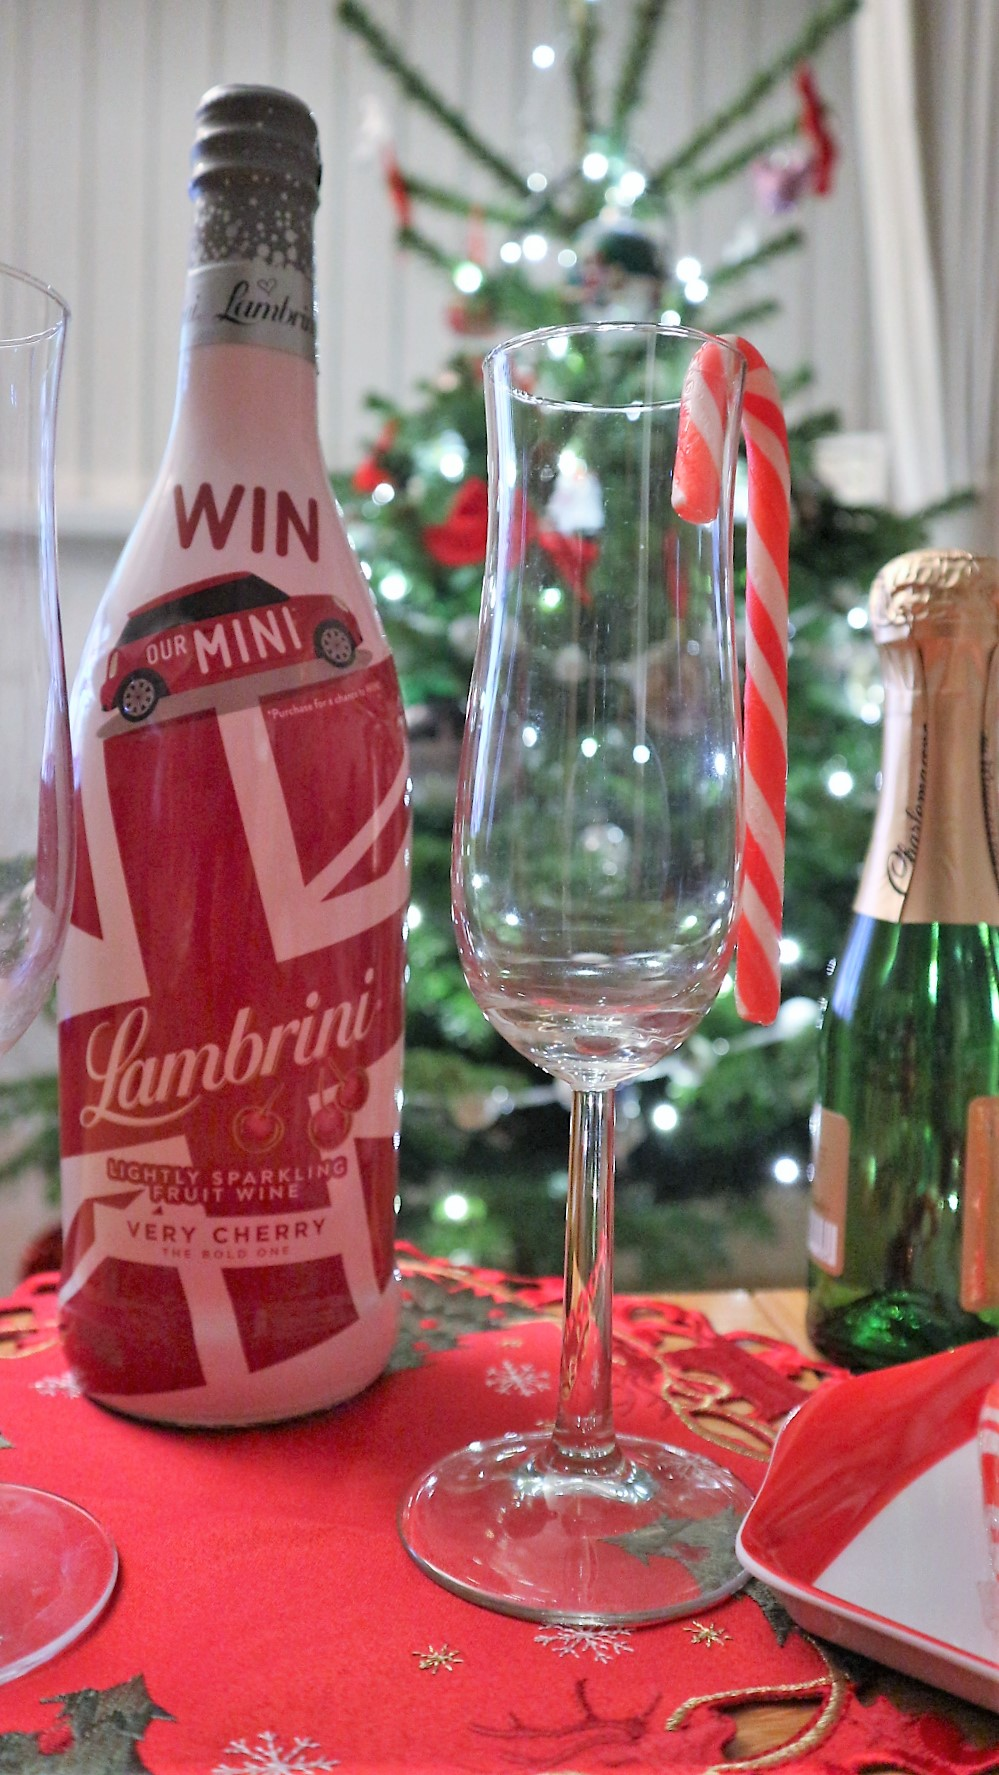 Lambrini. Lambrini Cherry. Christmas Cocktails. Liverpool Blogger. Christmas Ideas.